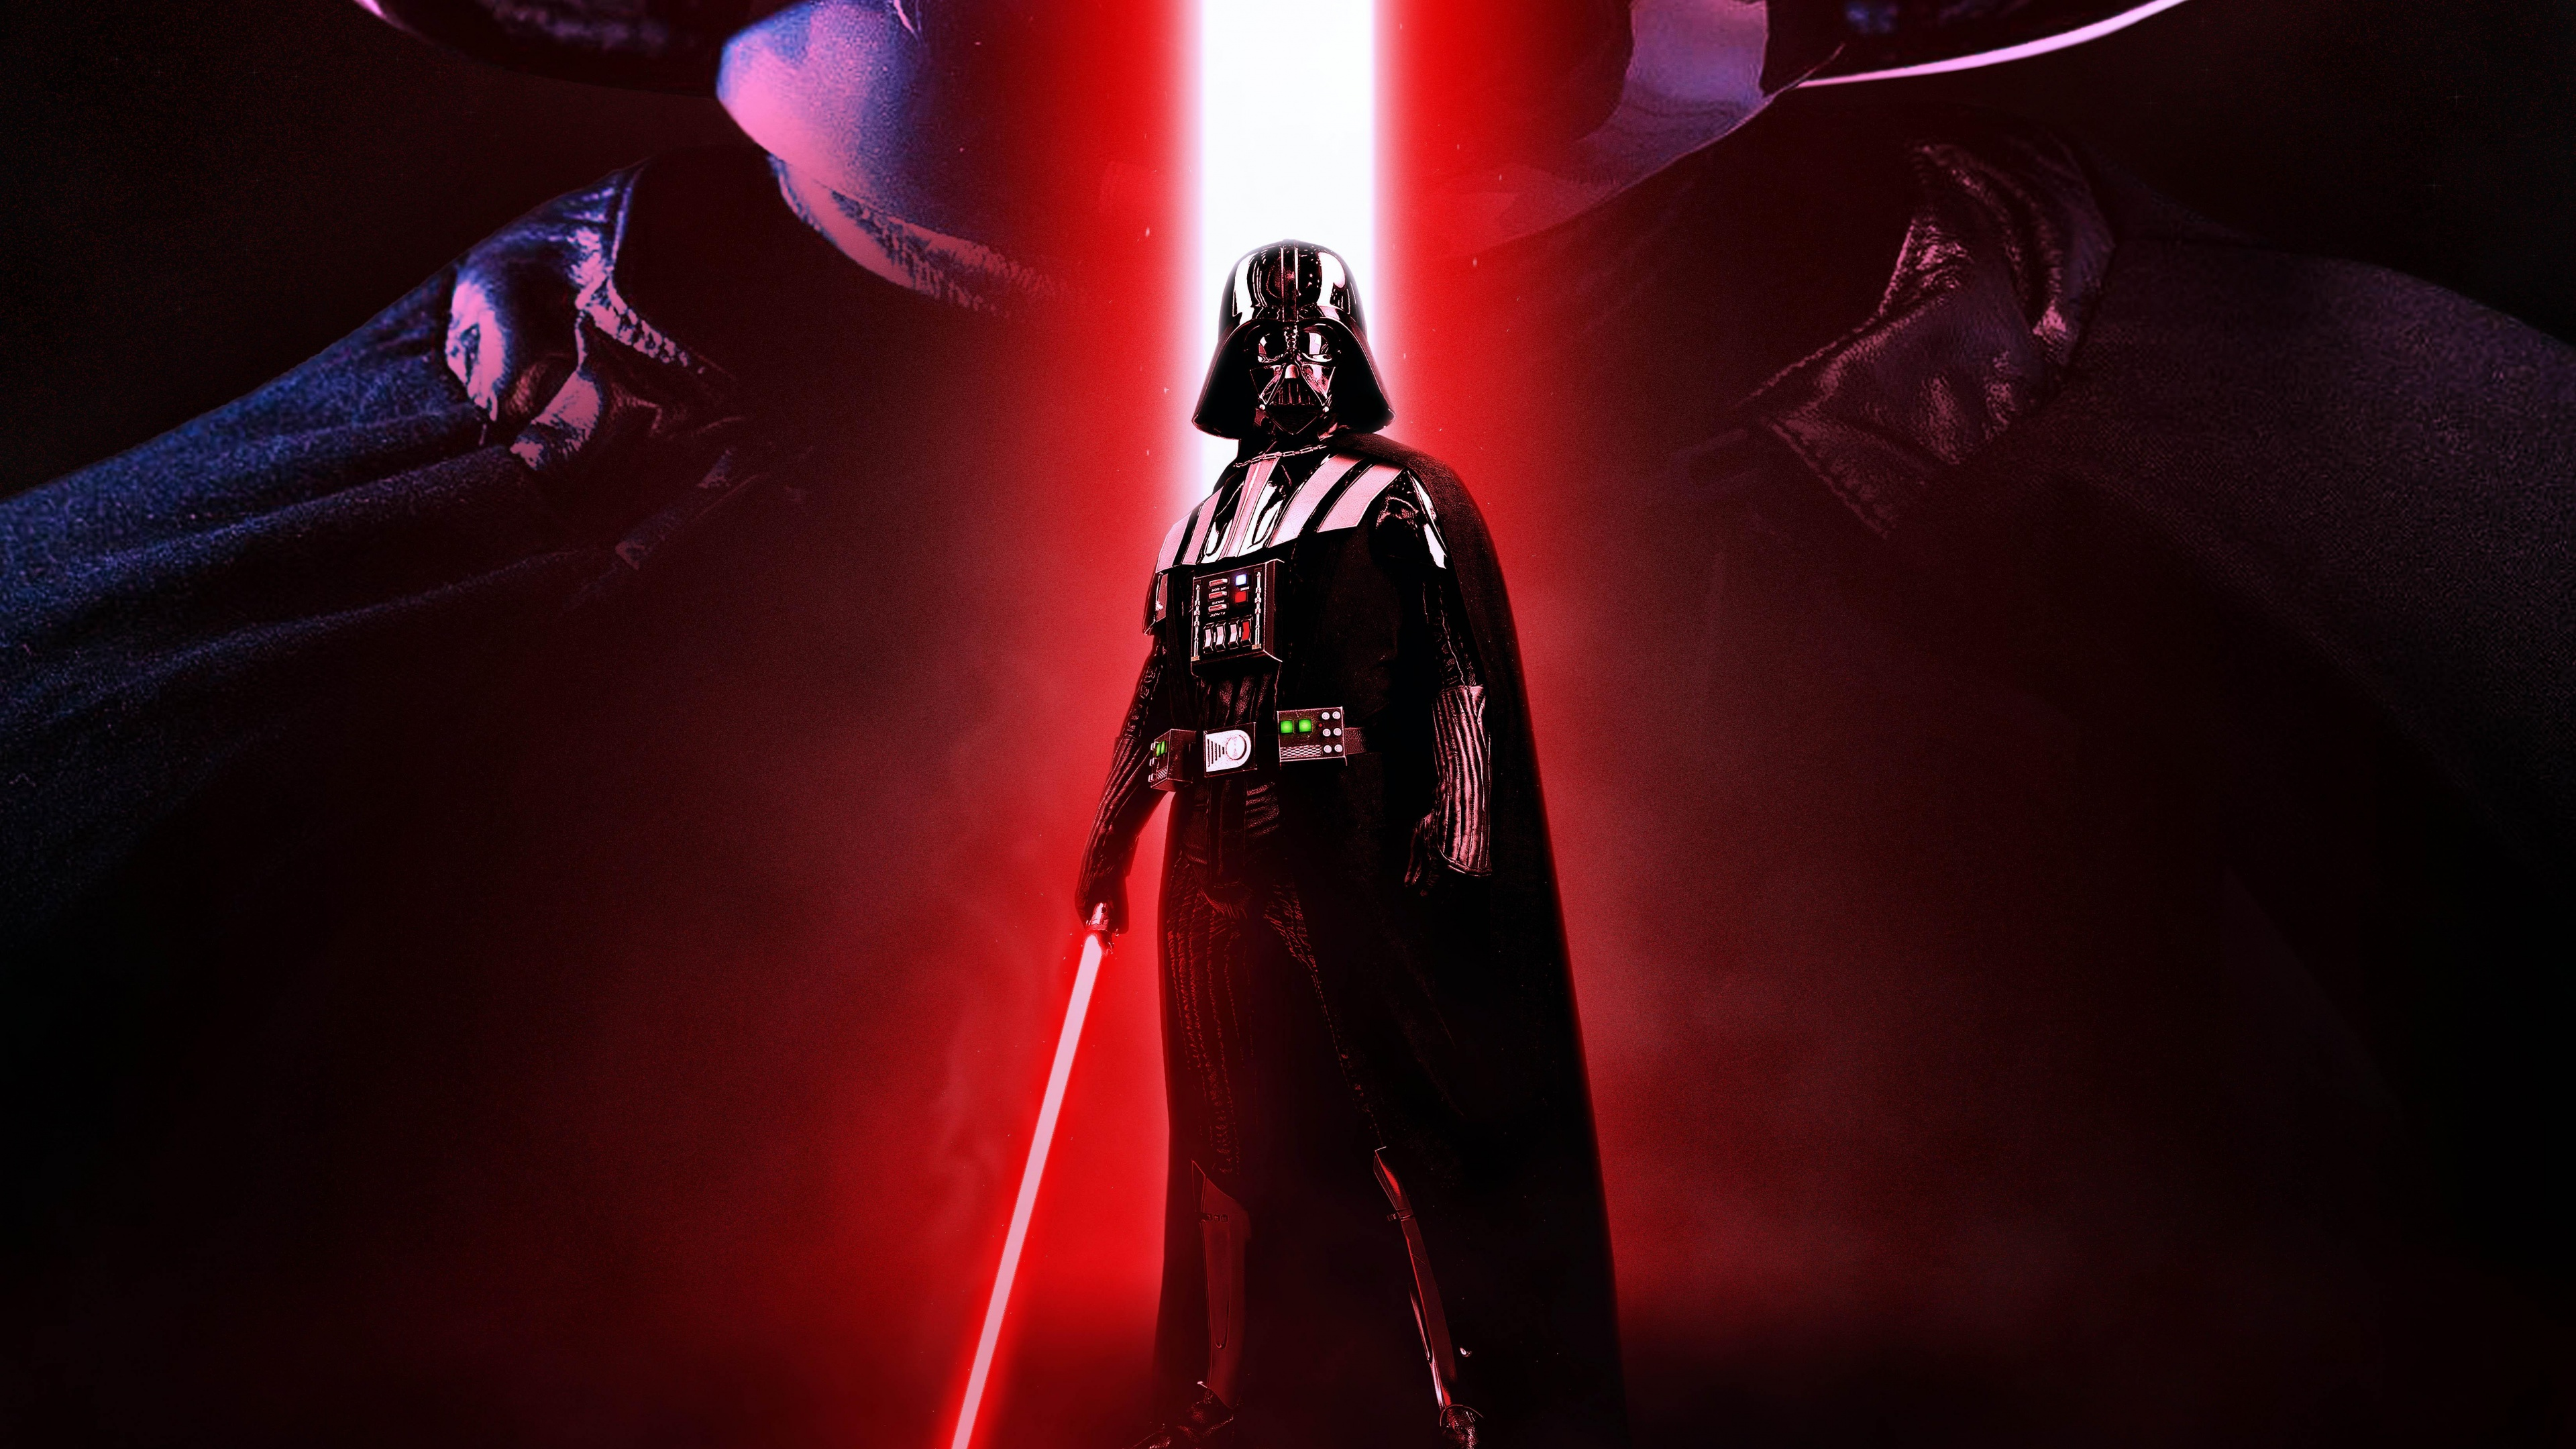 Darth Vader 4k Wallpaper Sith Lightsaber Star Wars 5k Movies 2704